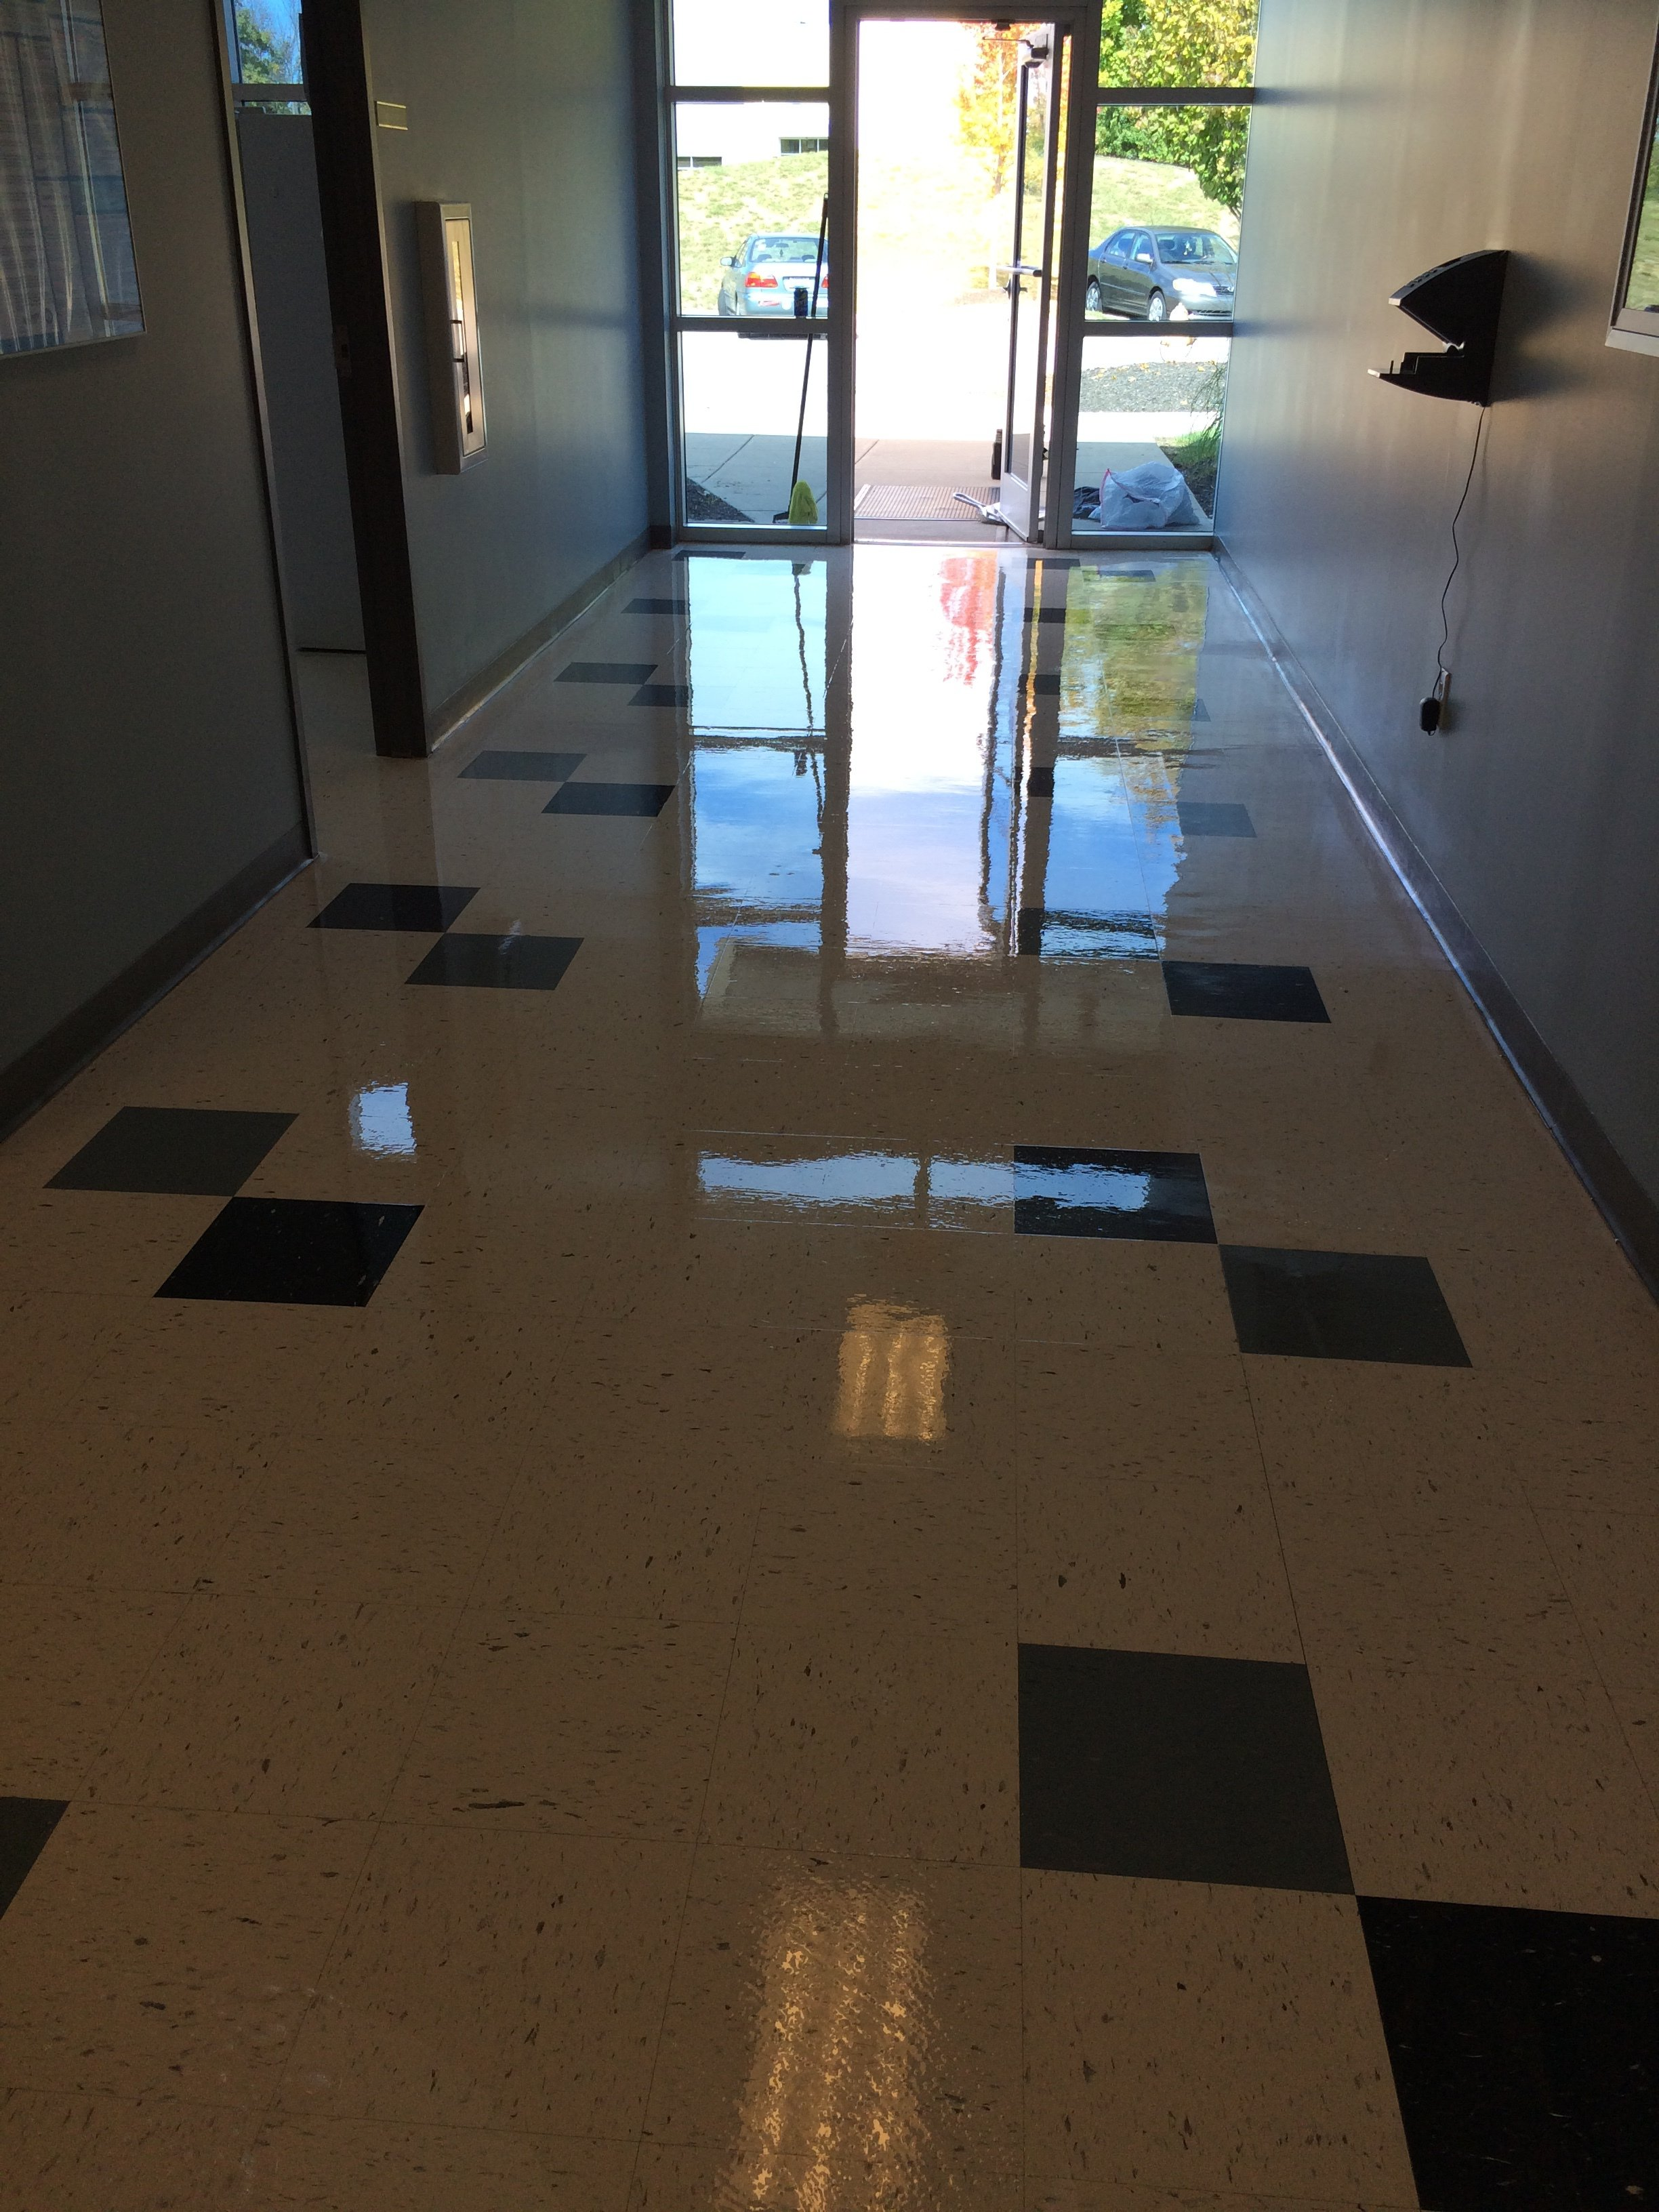 Attractive solid floor after getting maintenance solutions in Burlington, KY